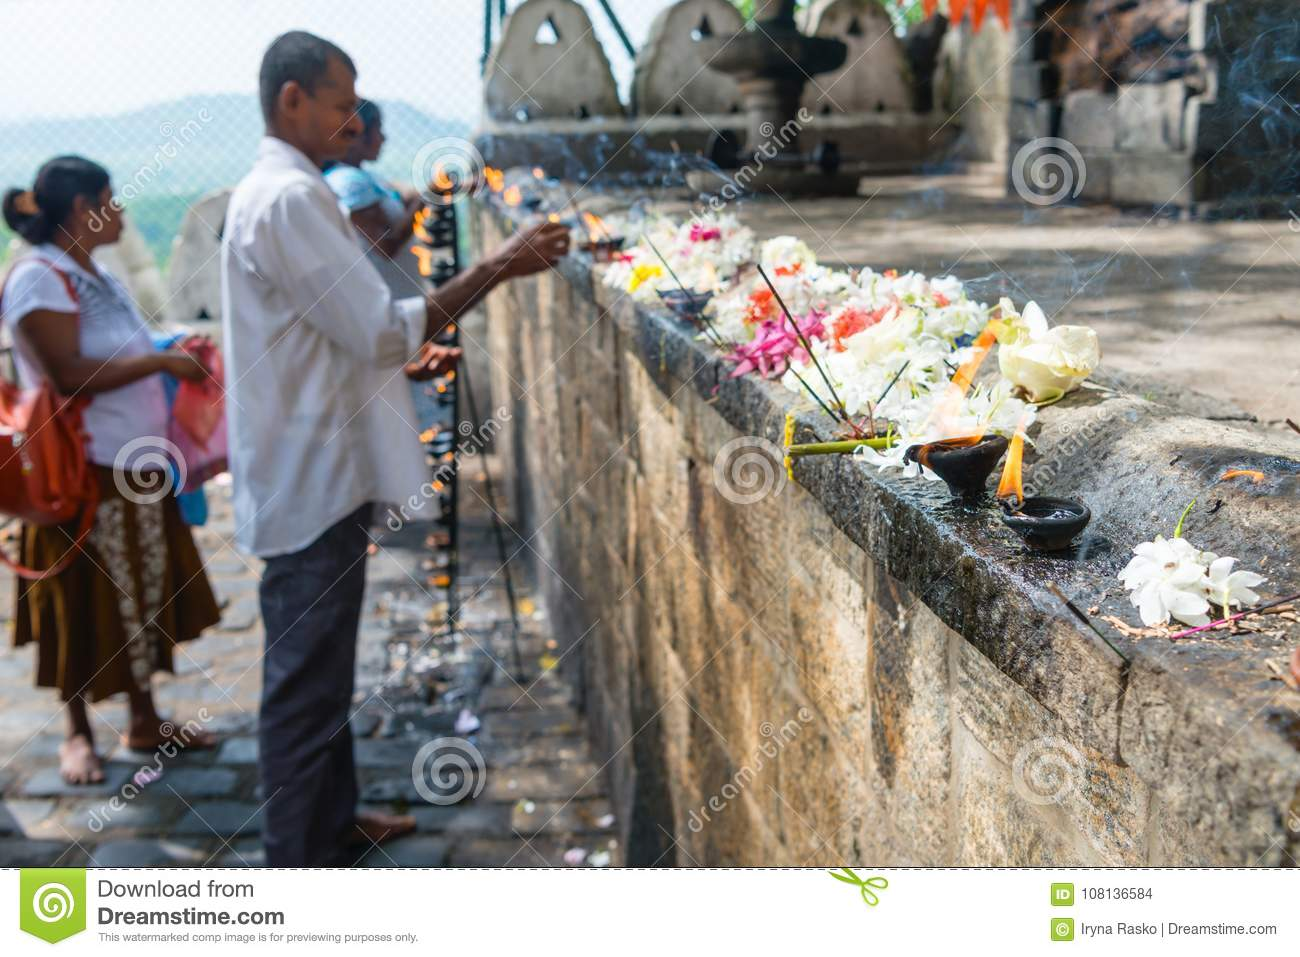 People place offerings with fragrant sticks, fresh flowers and b